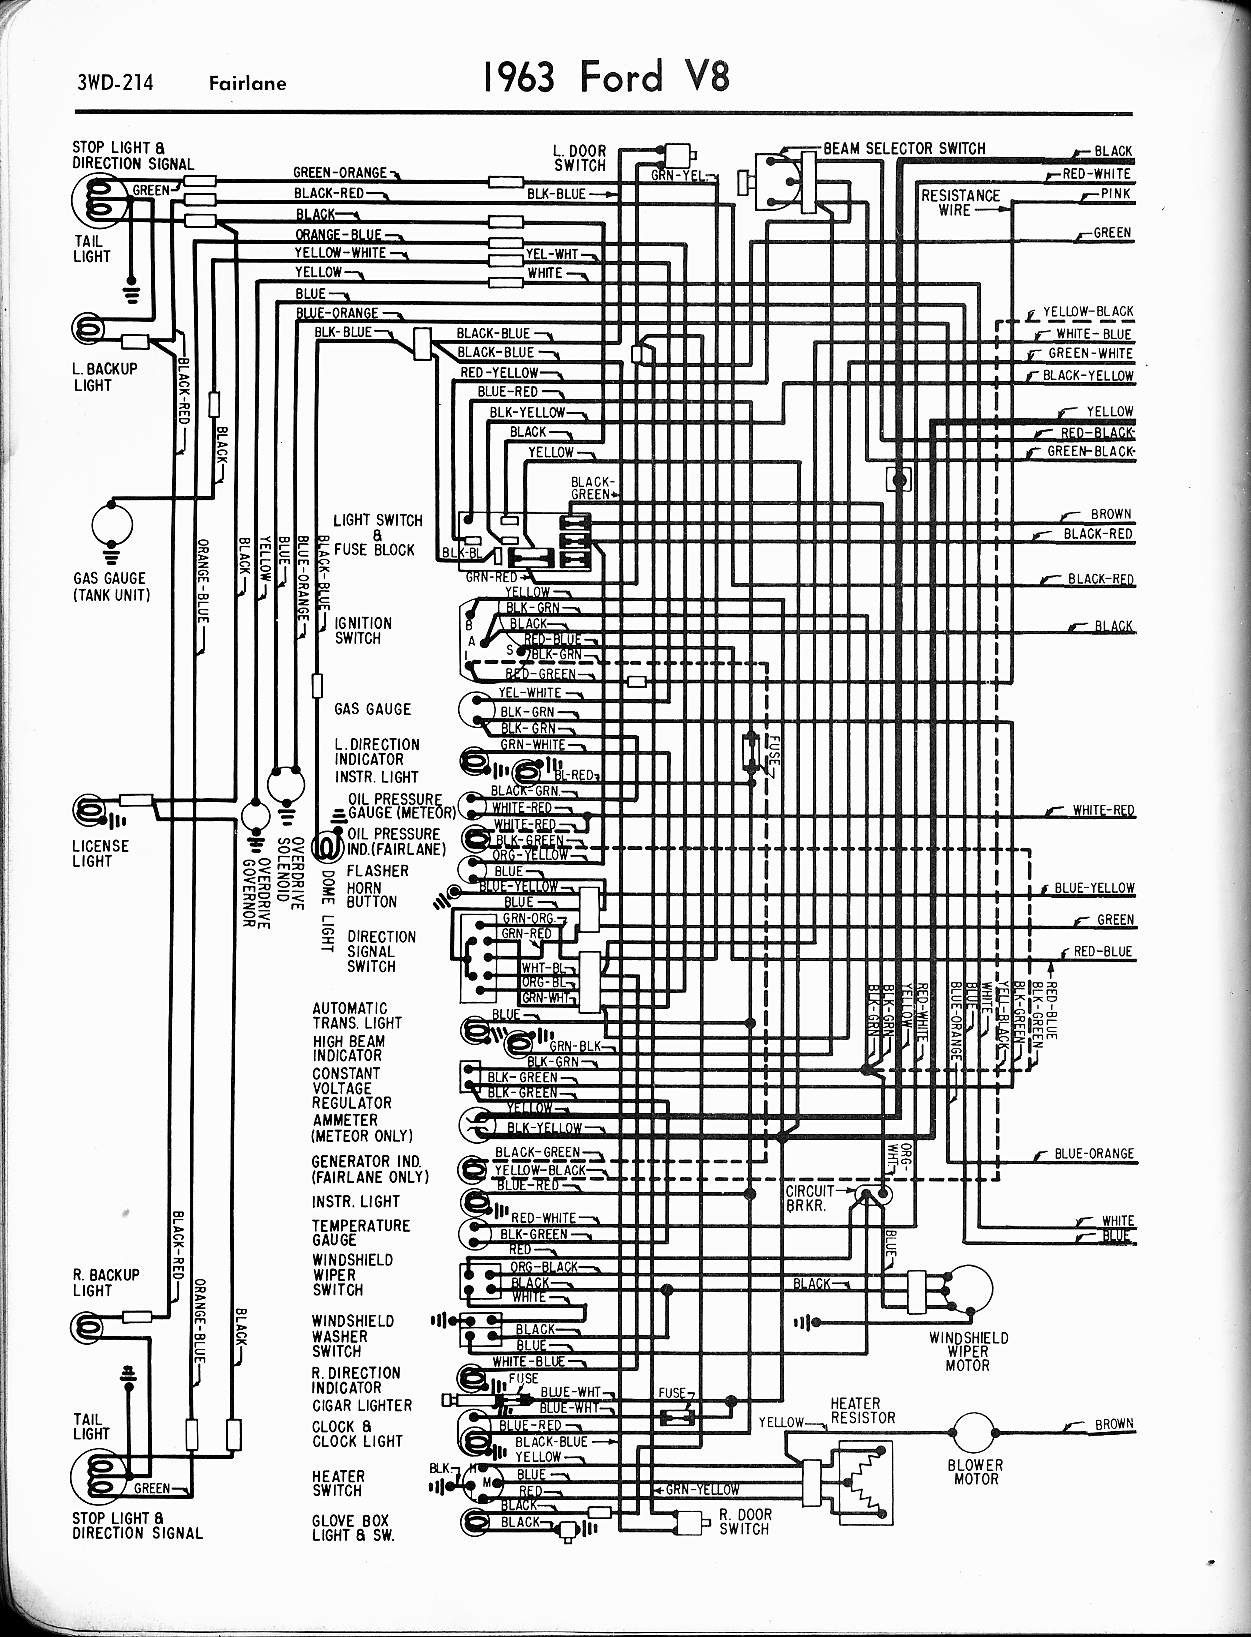 1956 Thunderbird Engine Wiring Diagram Library 1964 57 65 Ford Diagrams Pdf